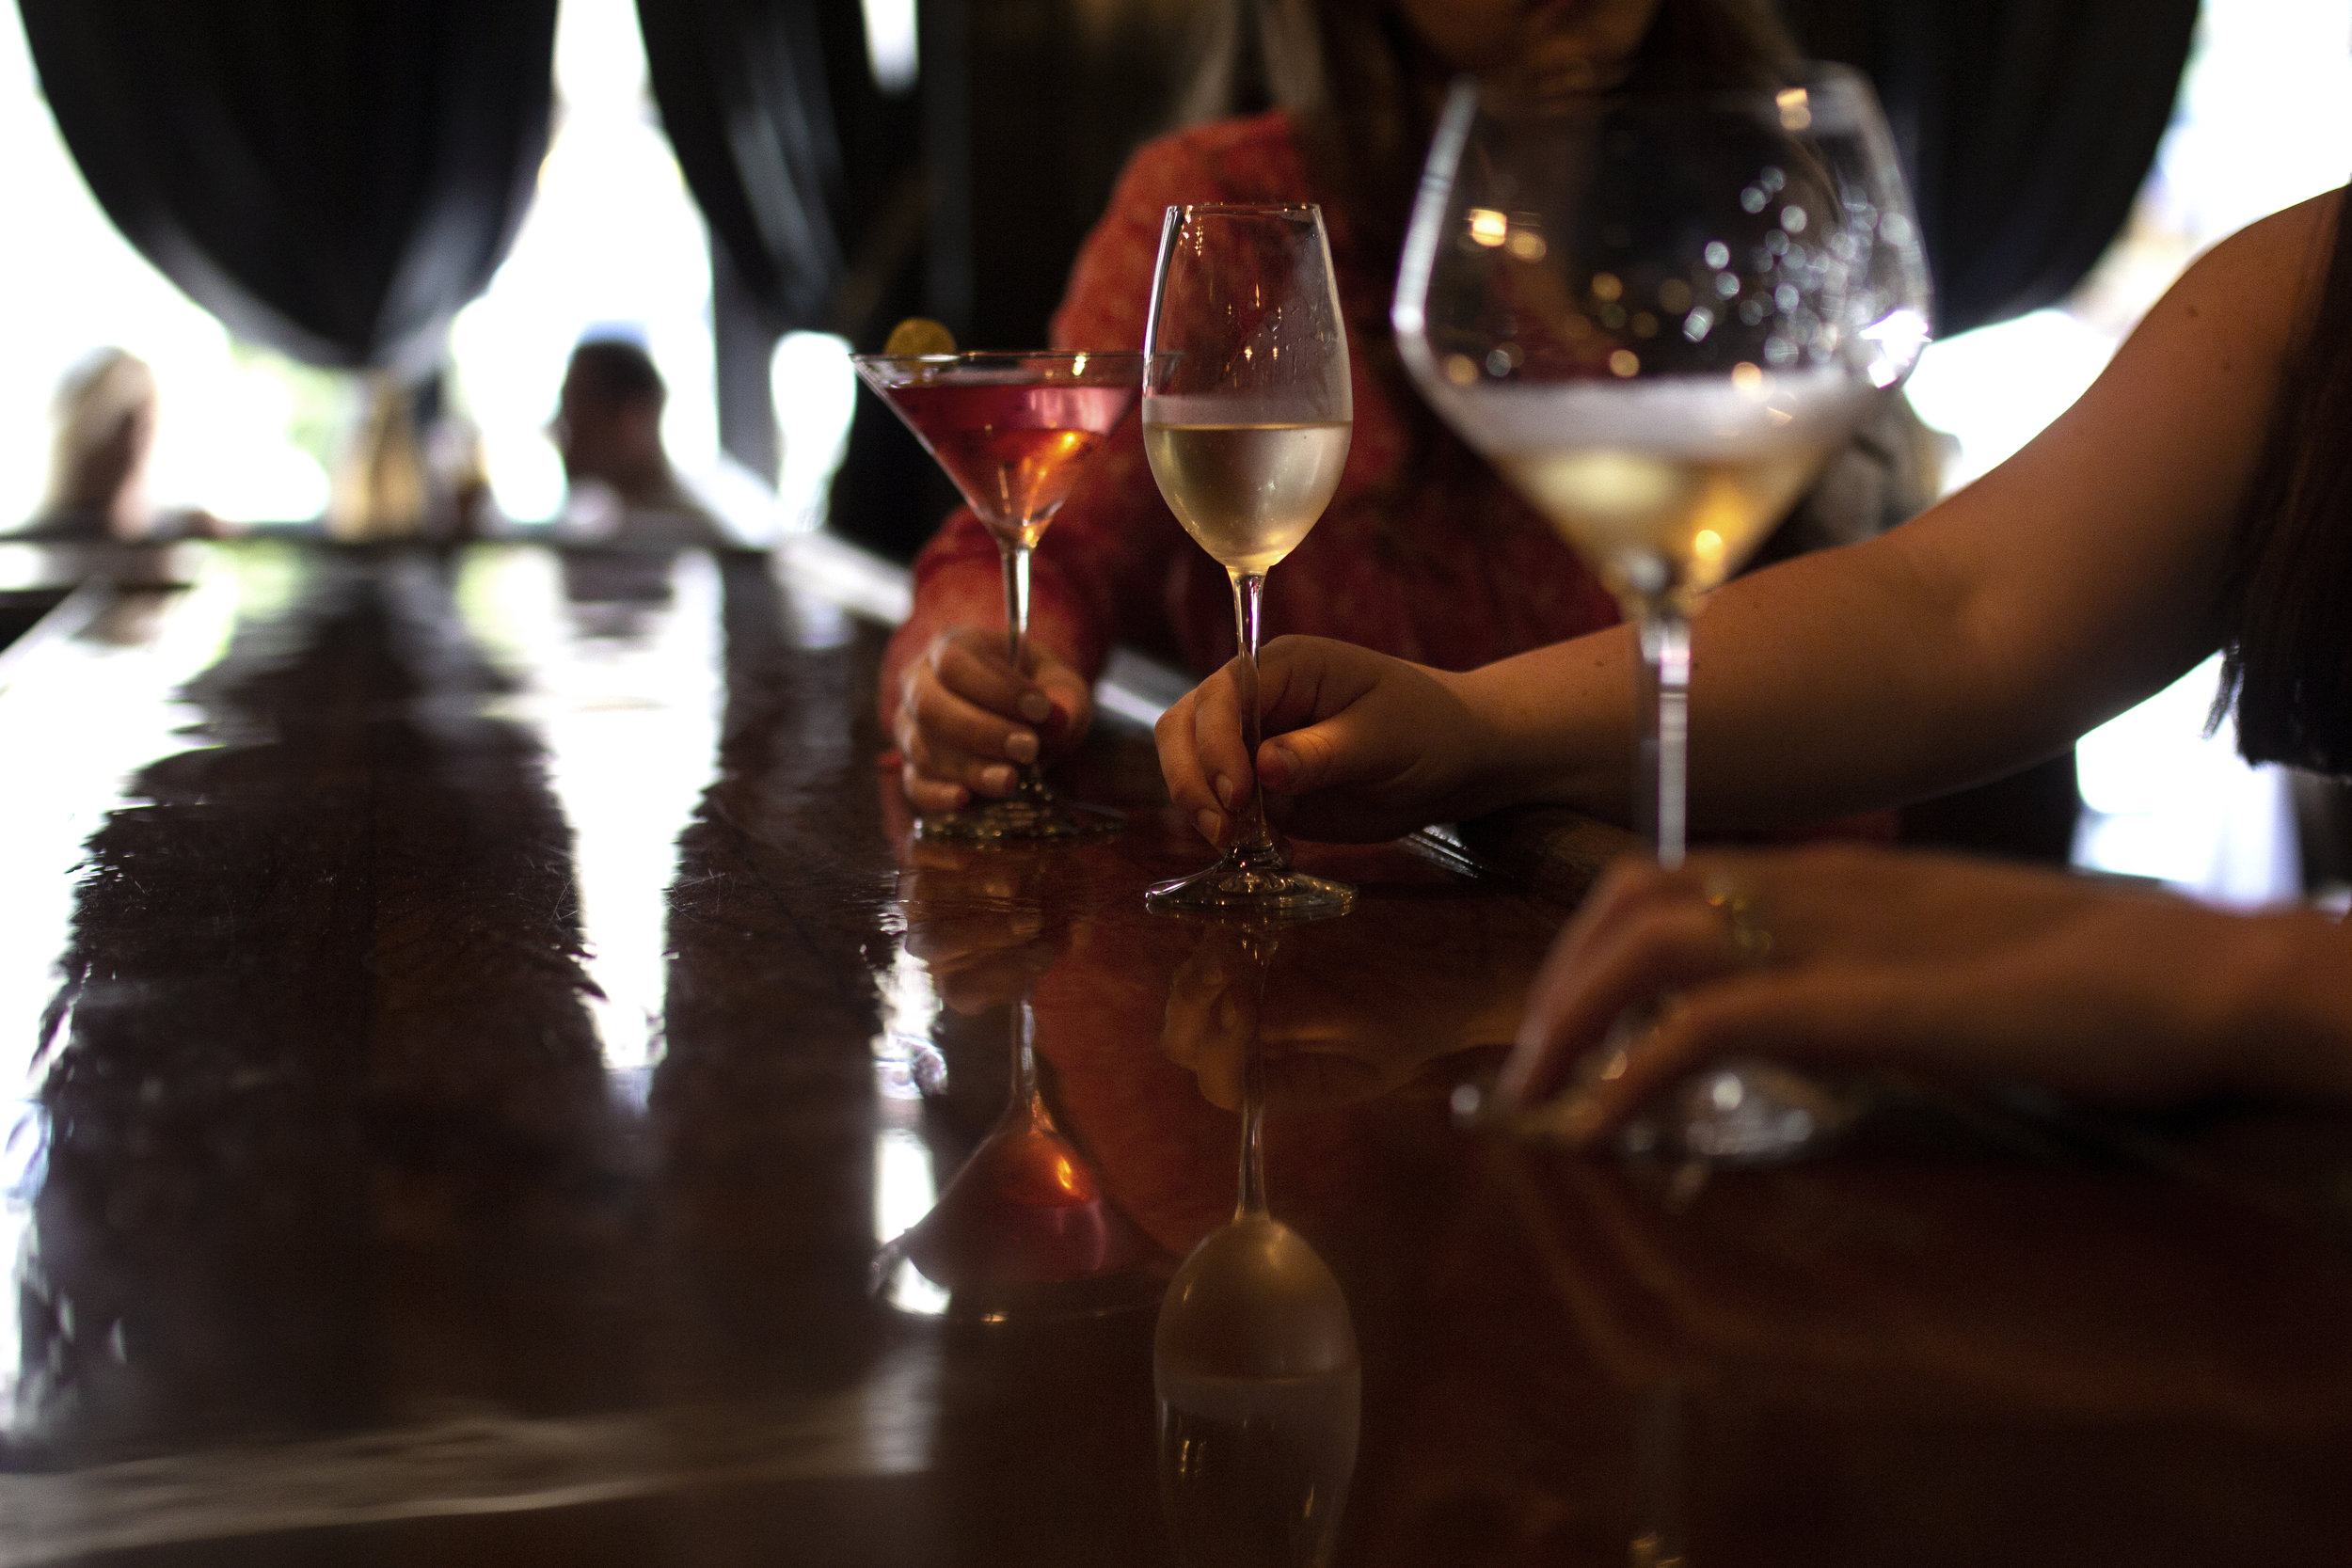 Wine at Bar Closeup.jpg